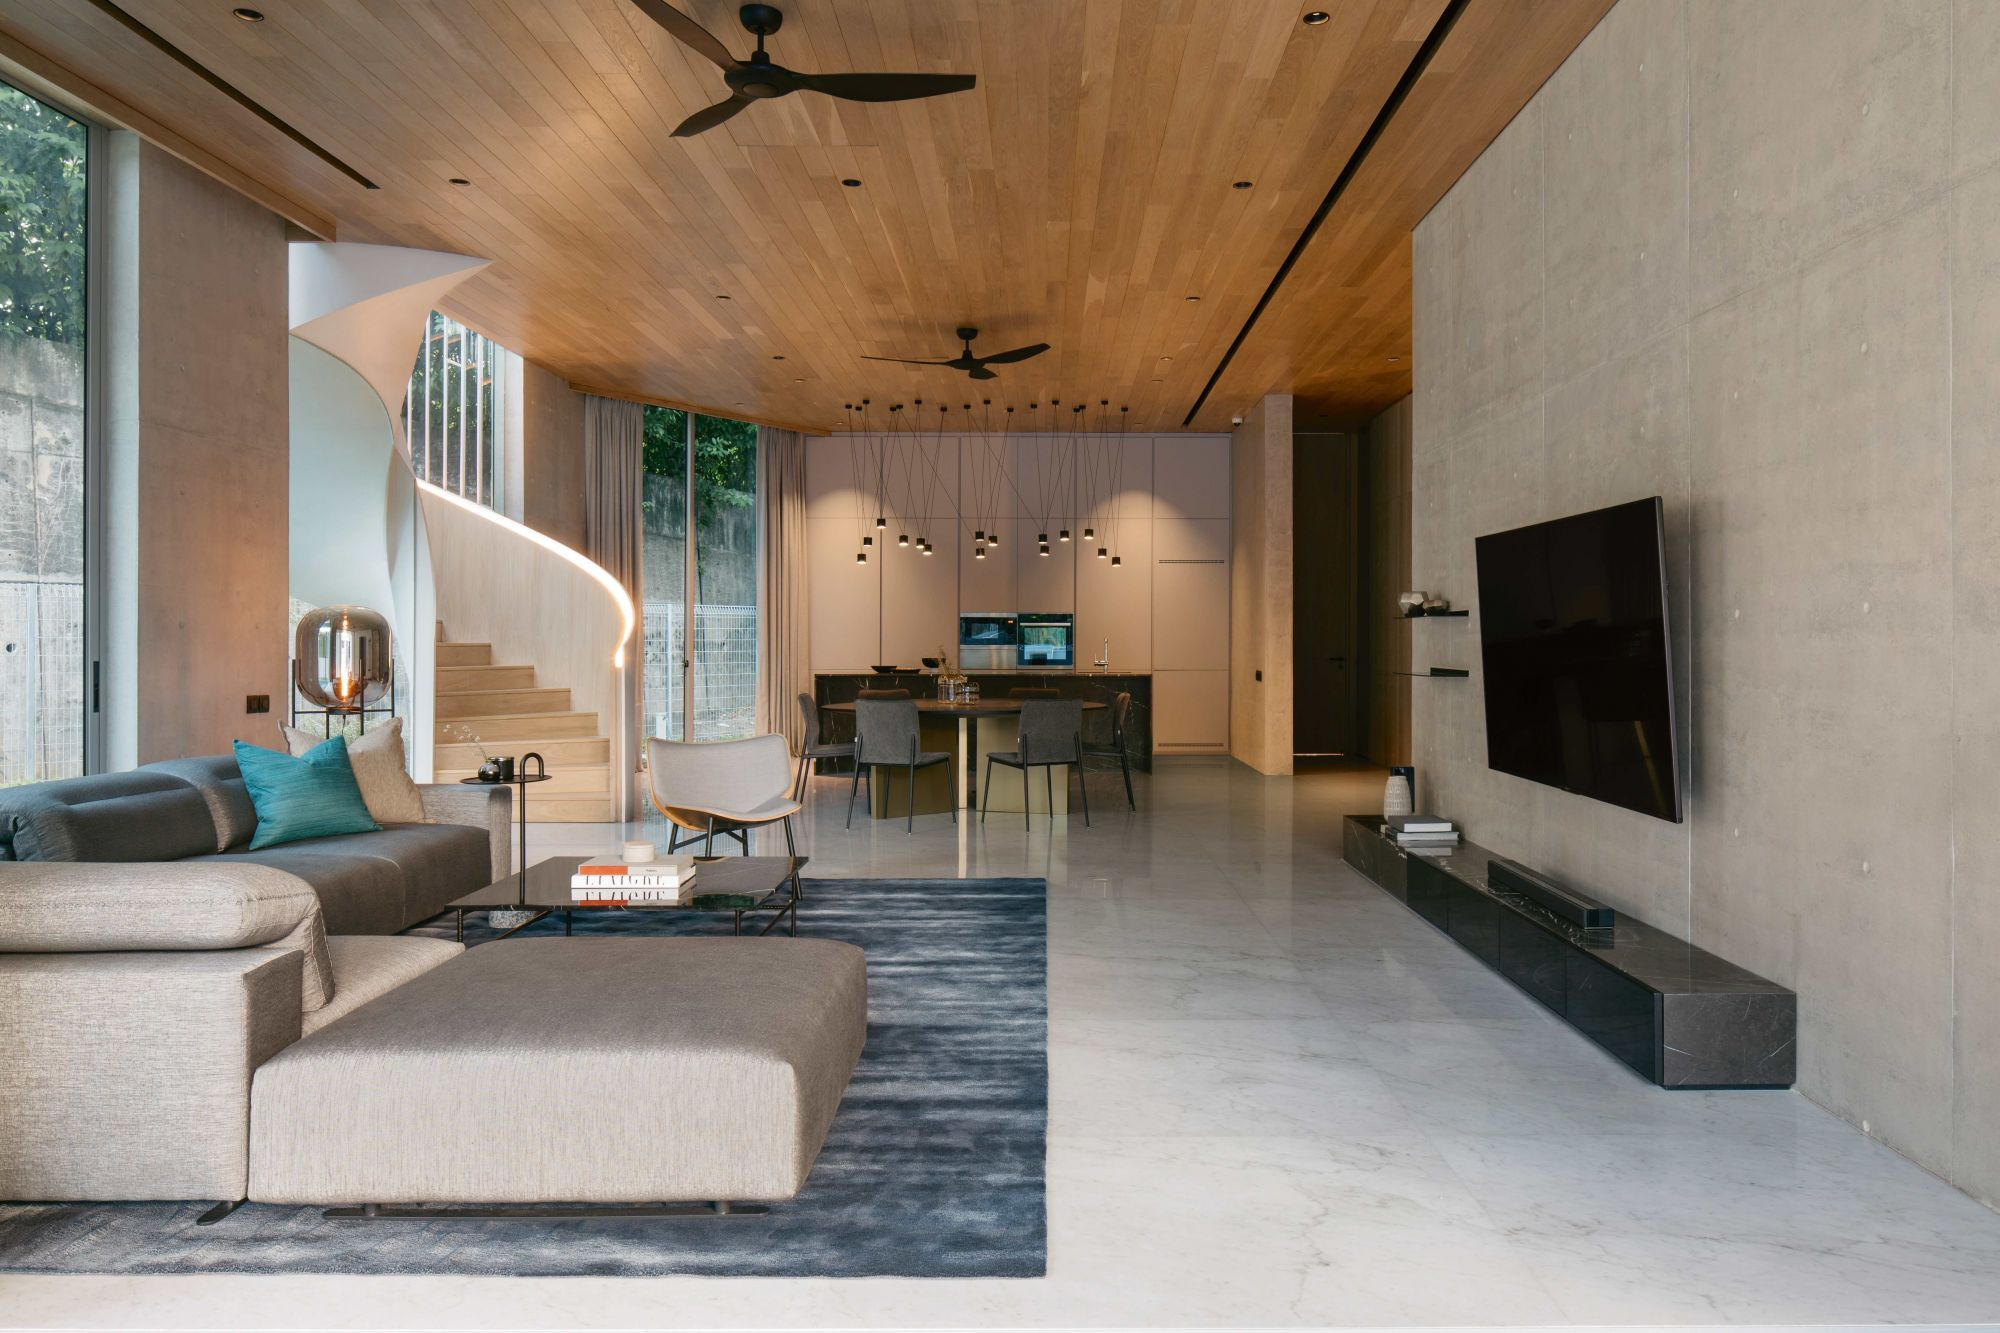 Home Tour: How A Curved Staircase Became The Focal Point Of This Minimalist House